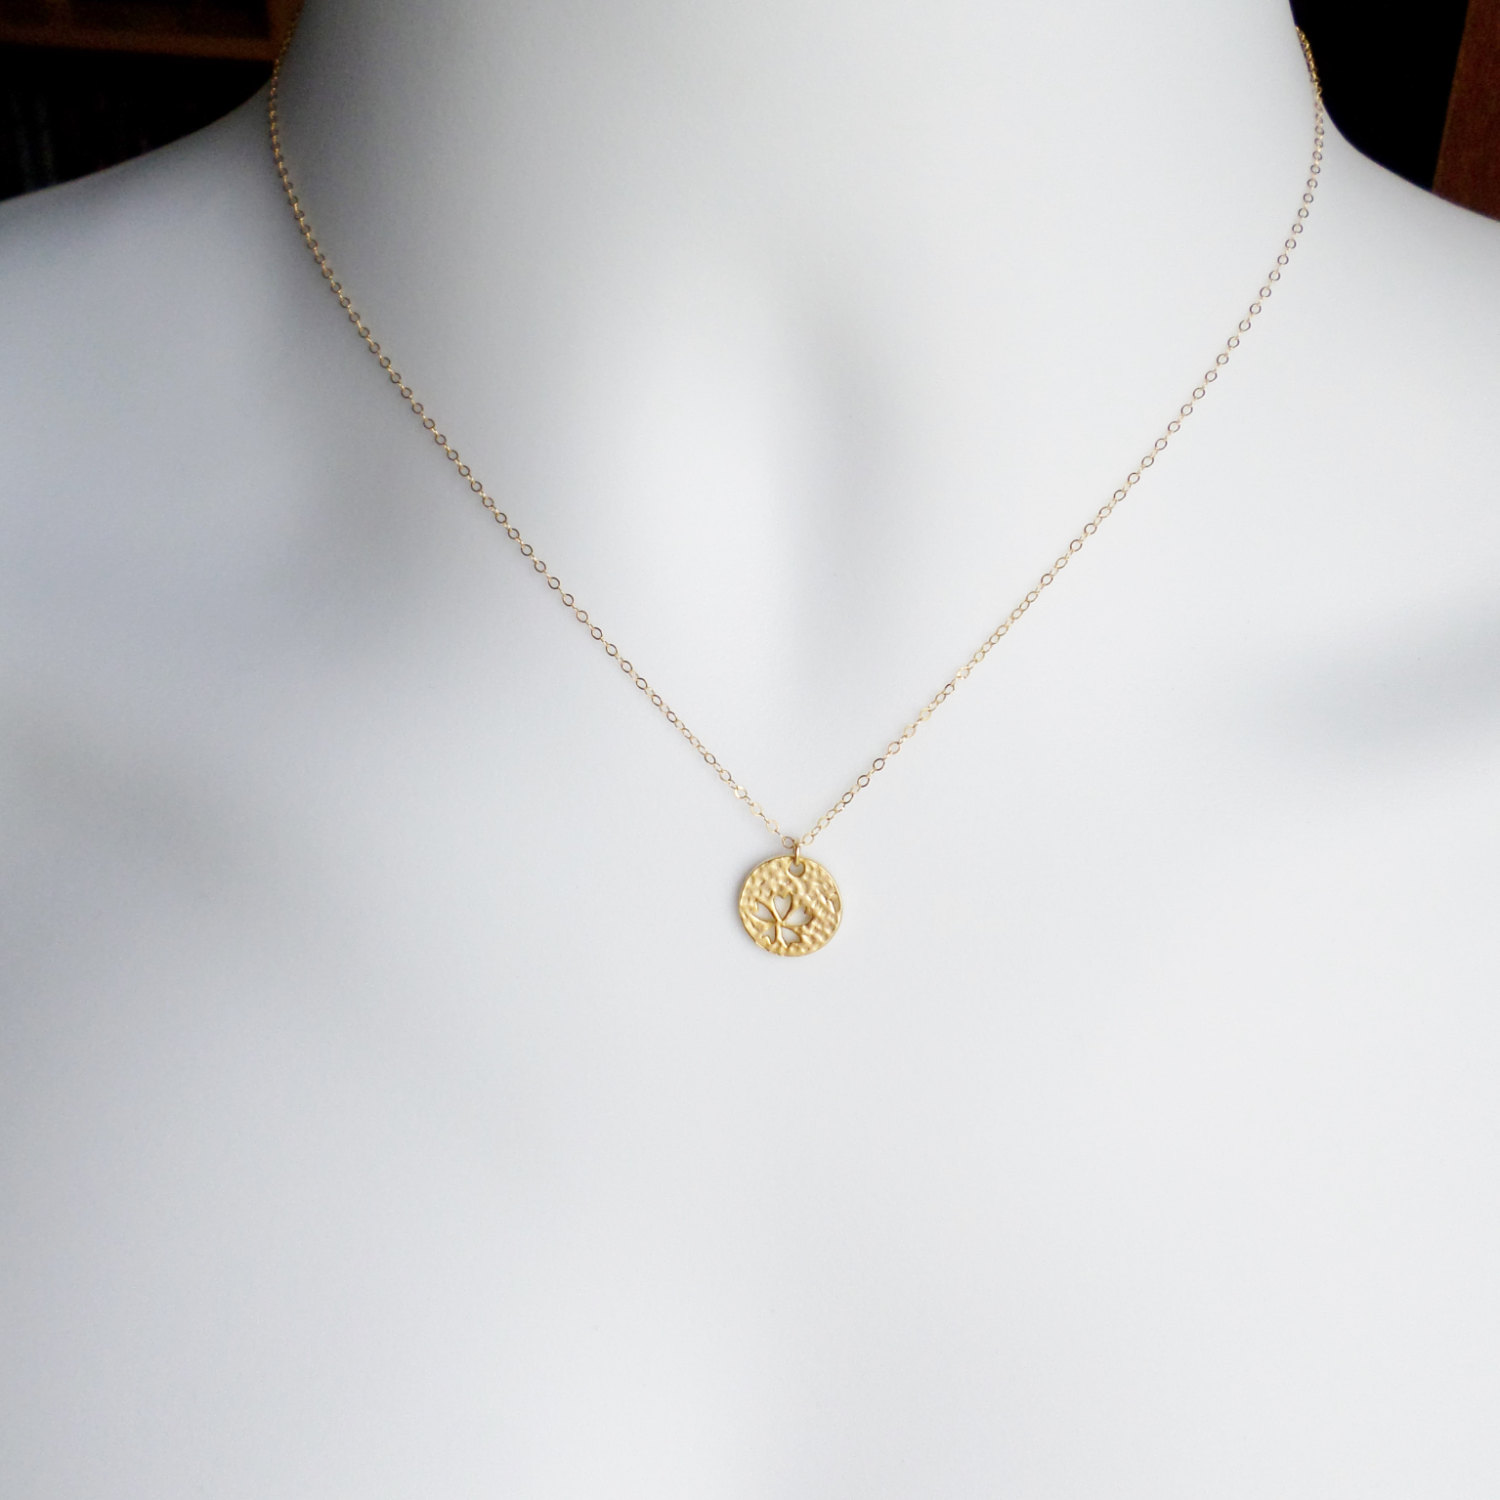 pin gold everyday cross necklace best tiny jewelry simple bridal wedding wear